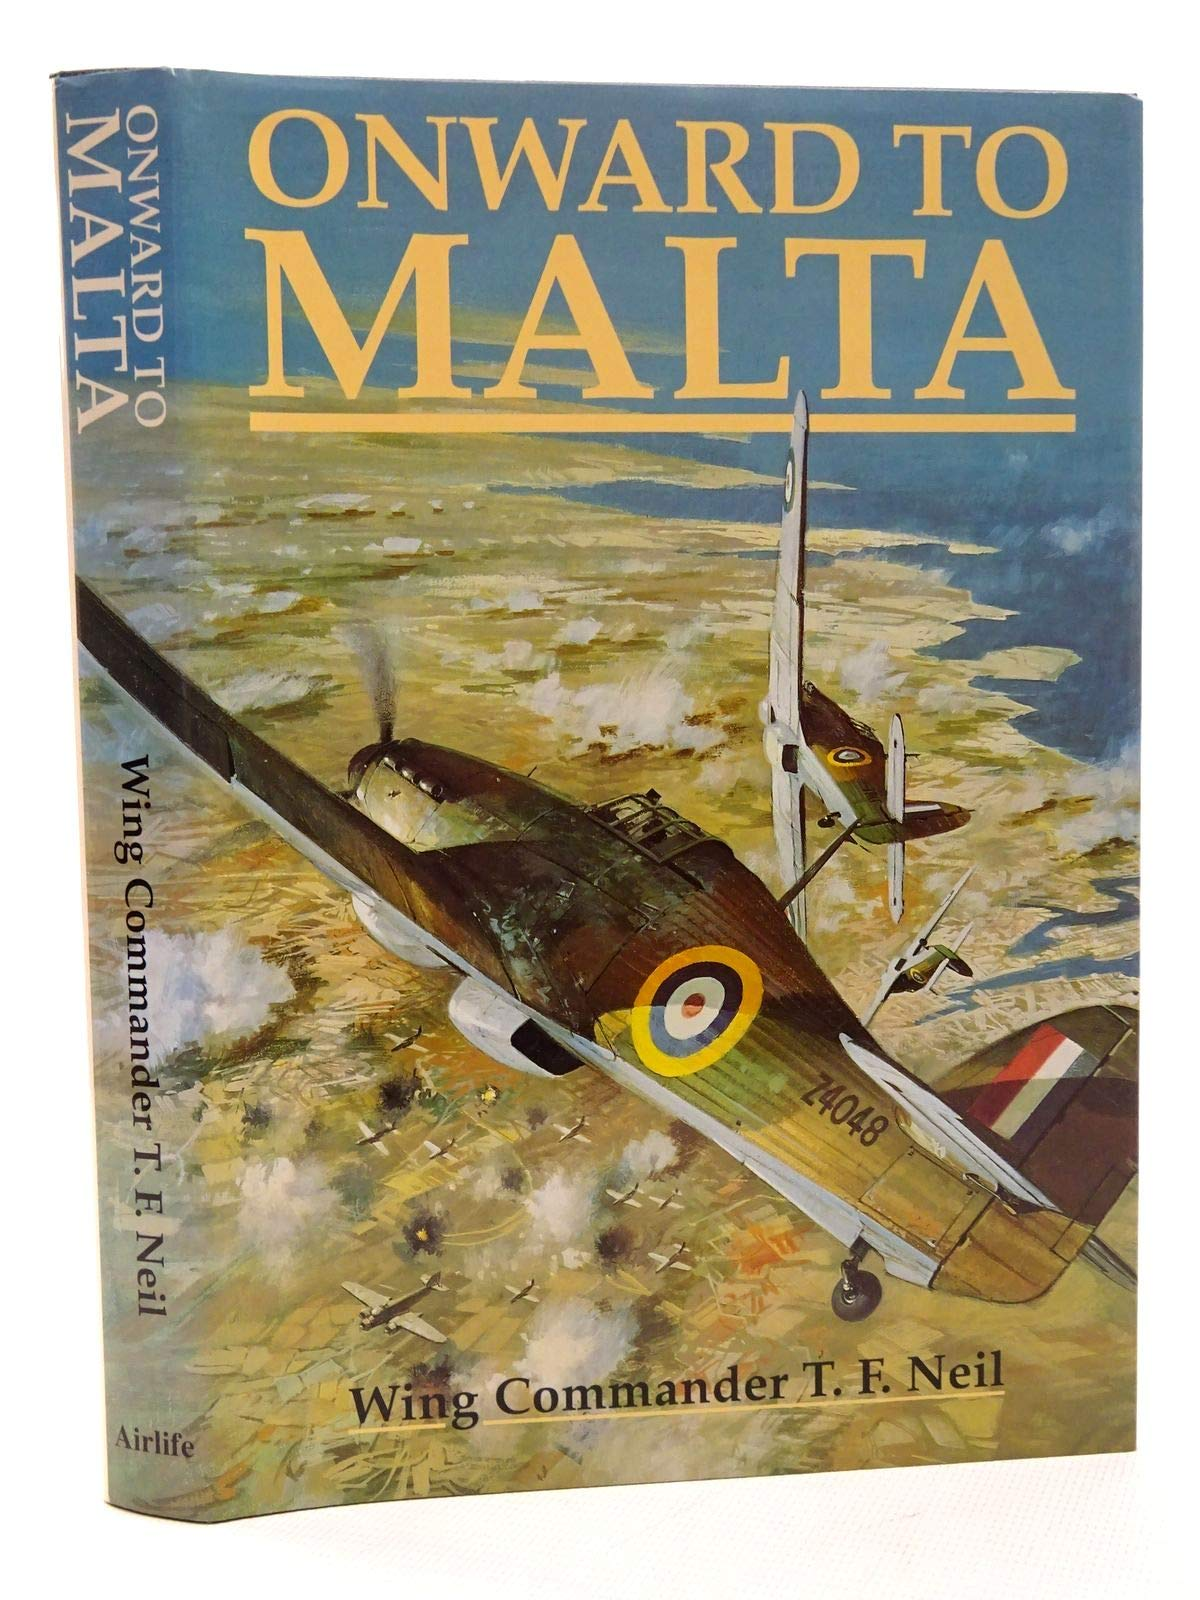 Onward to Malta: Amazon.co.uk: Neil, T.F.: 9781853102097: Books